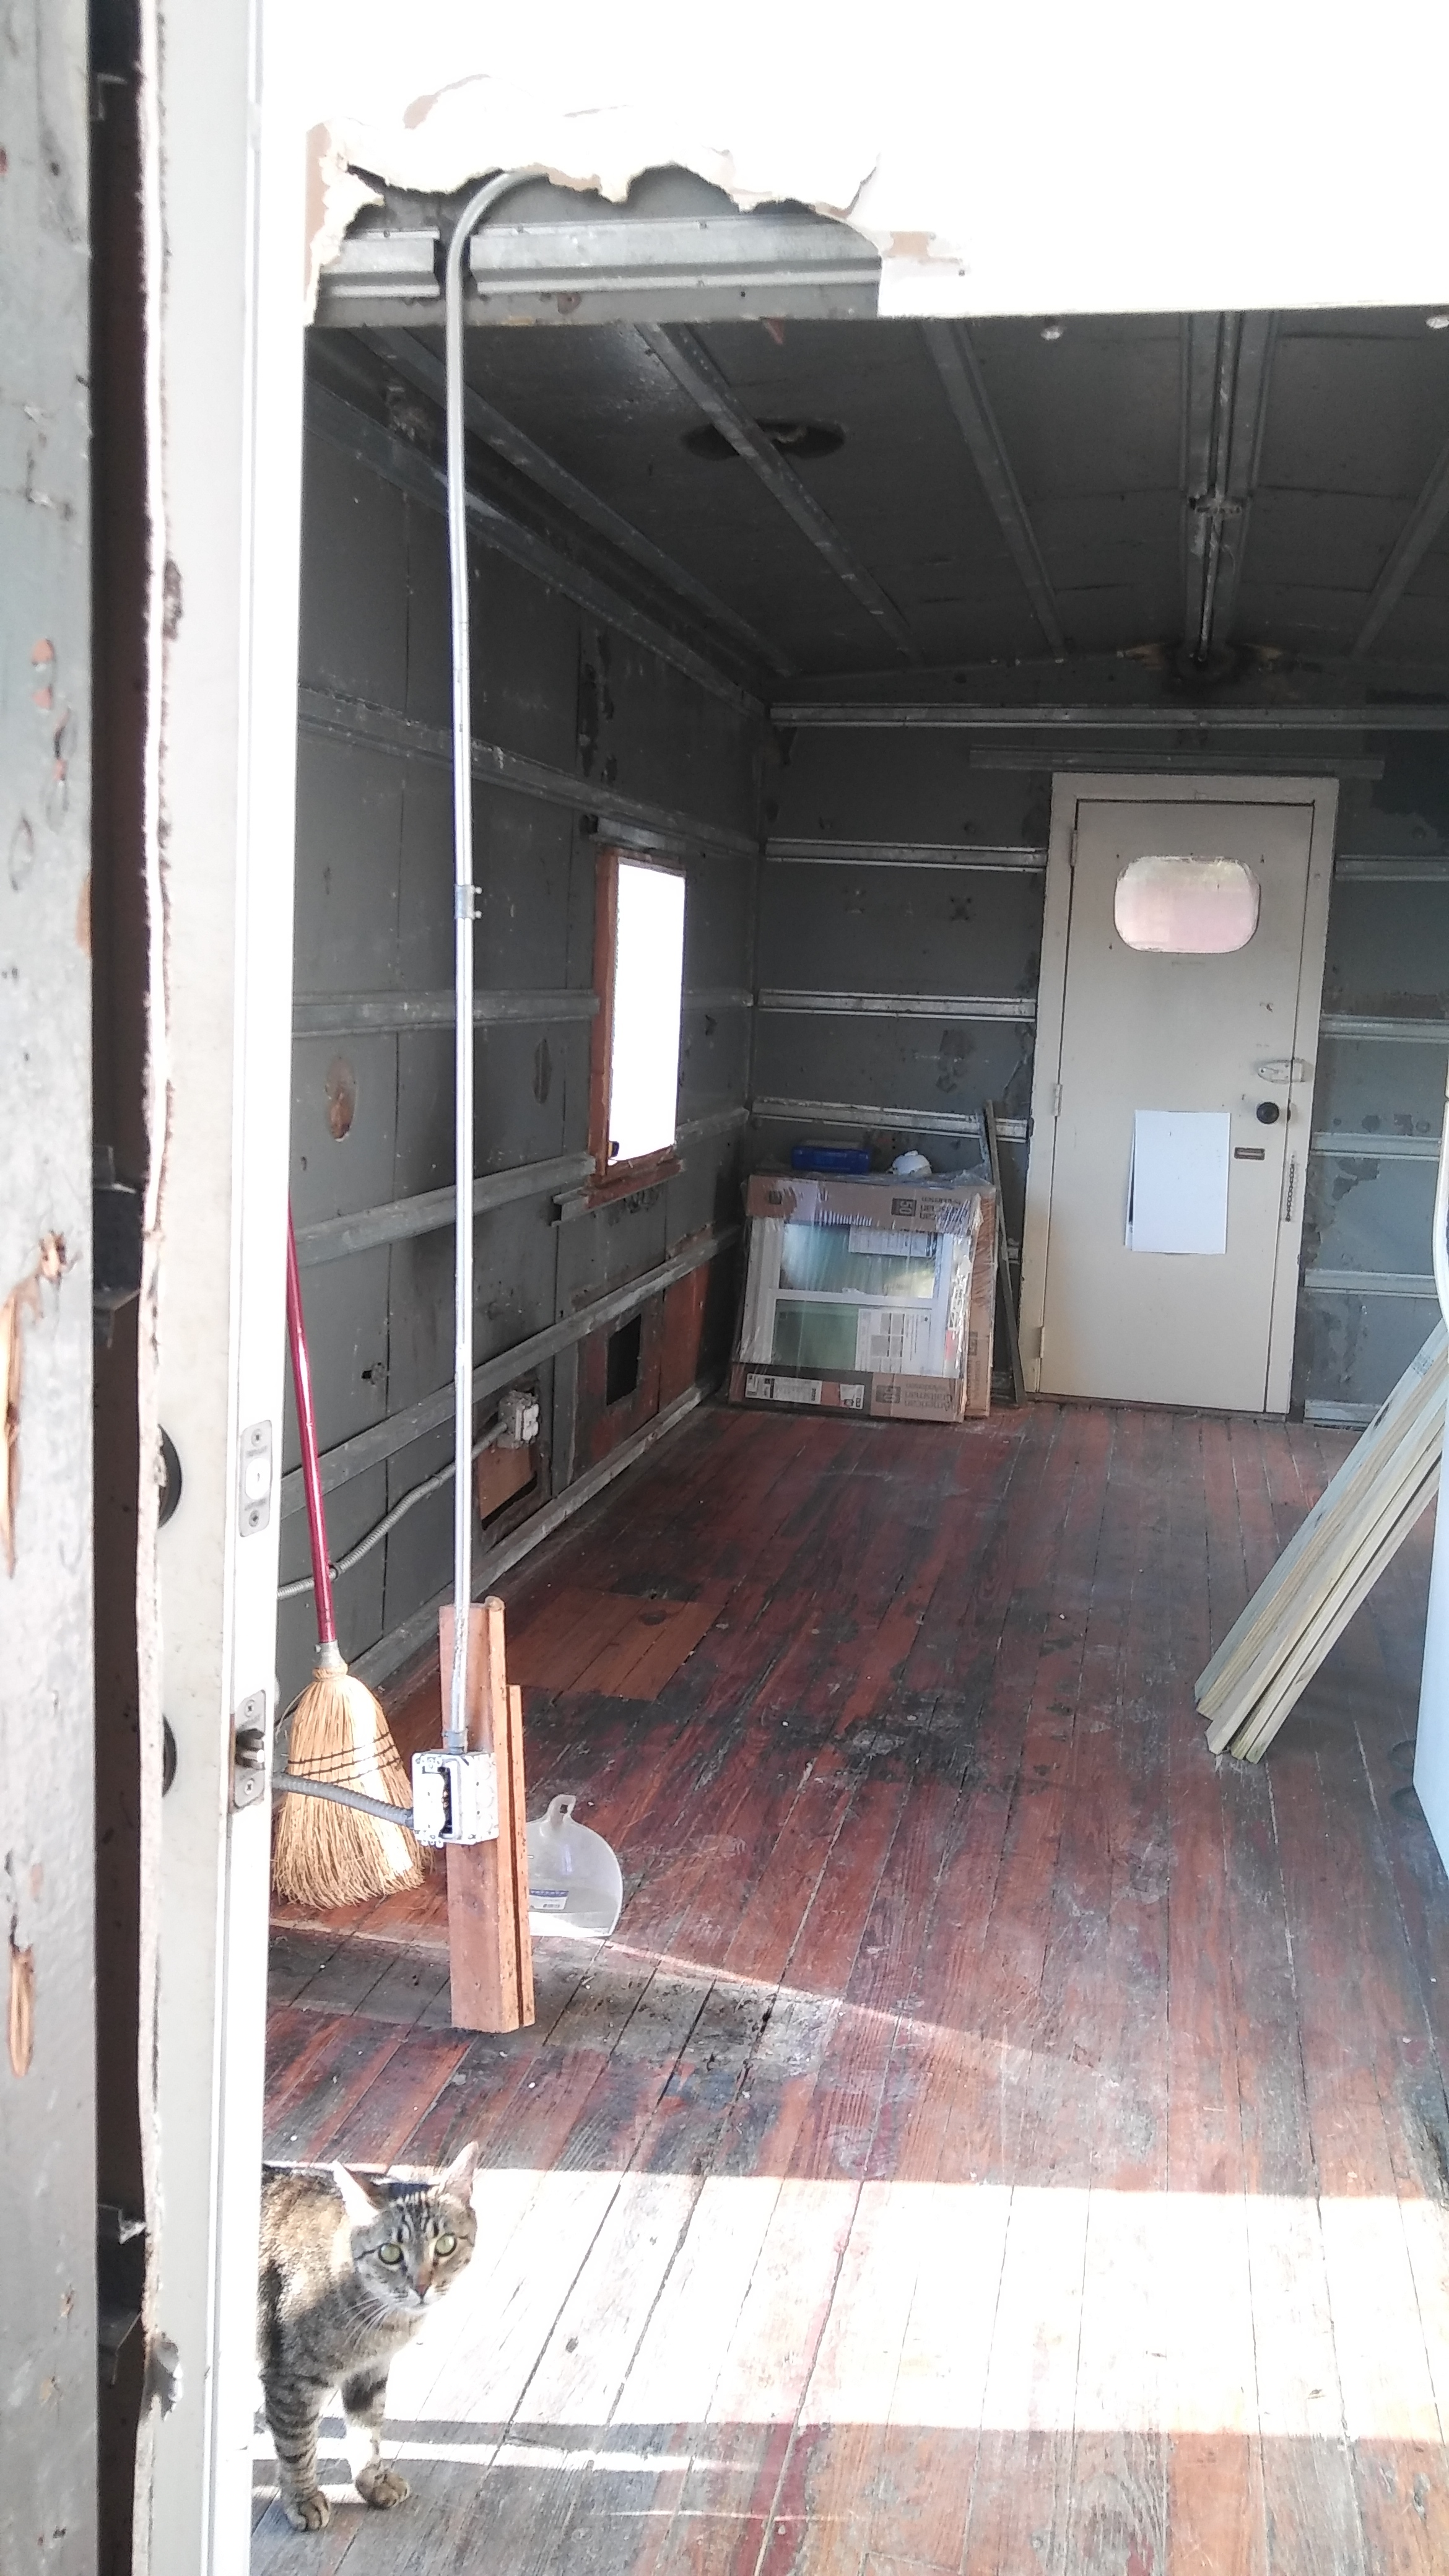 South side of caboose with central wall removed.